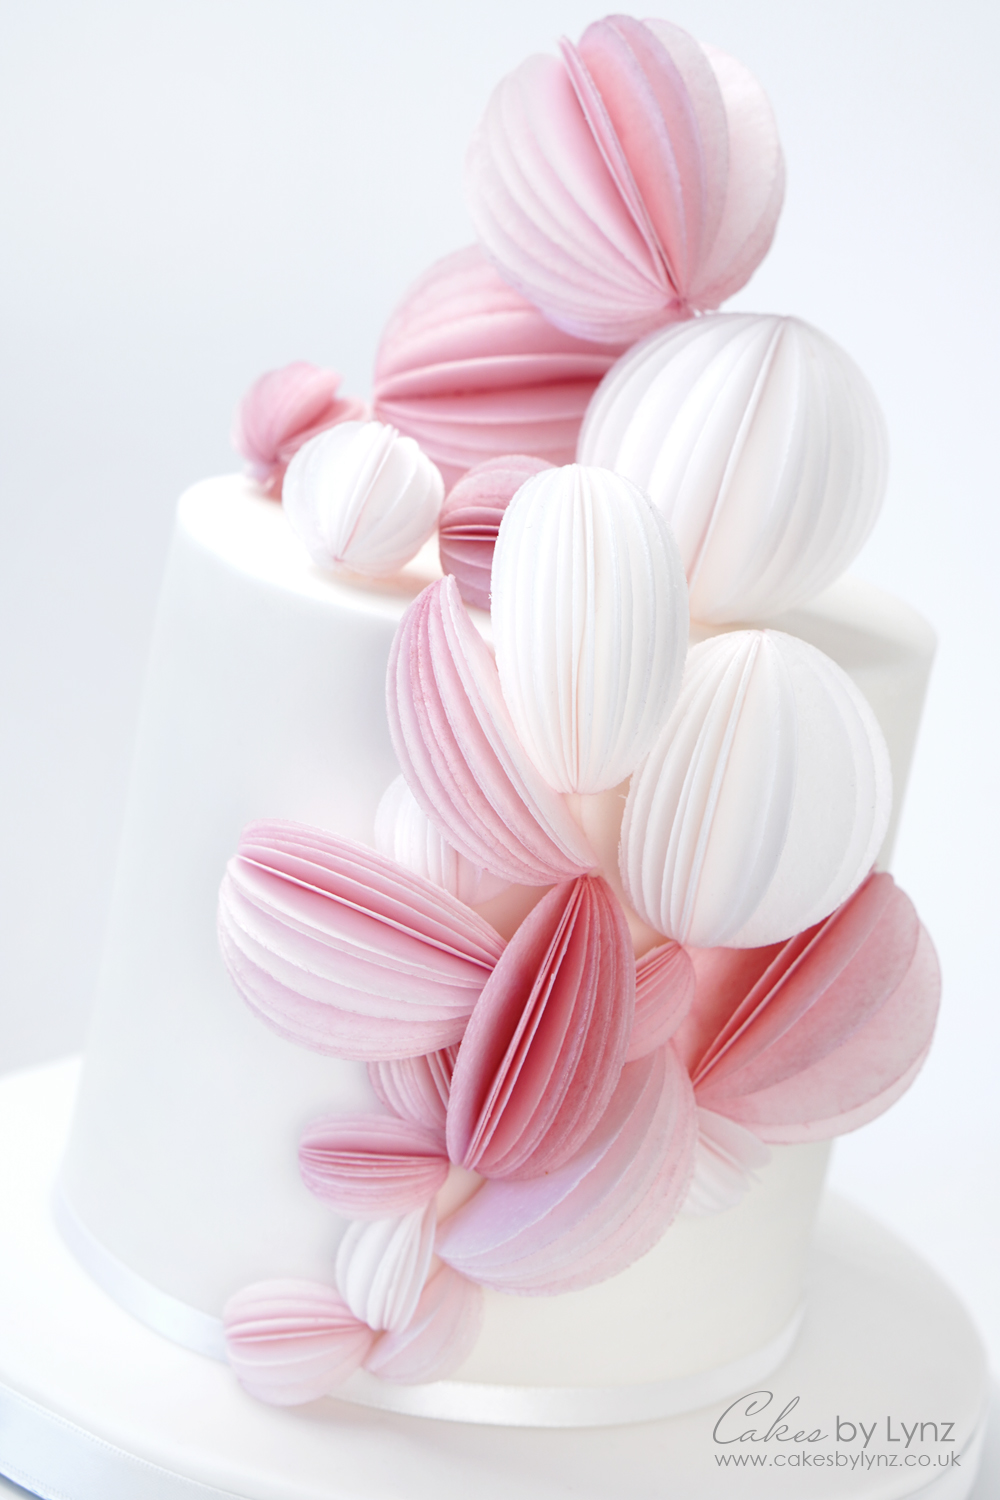 Wafer Paper Cake Decorations